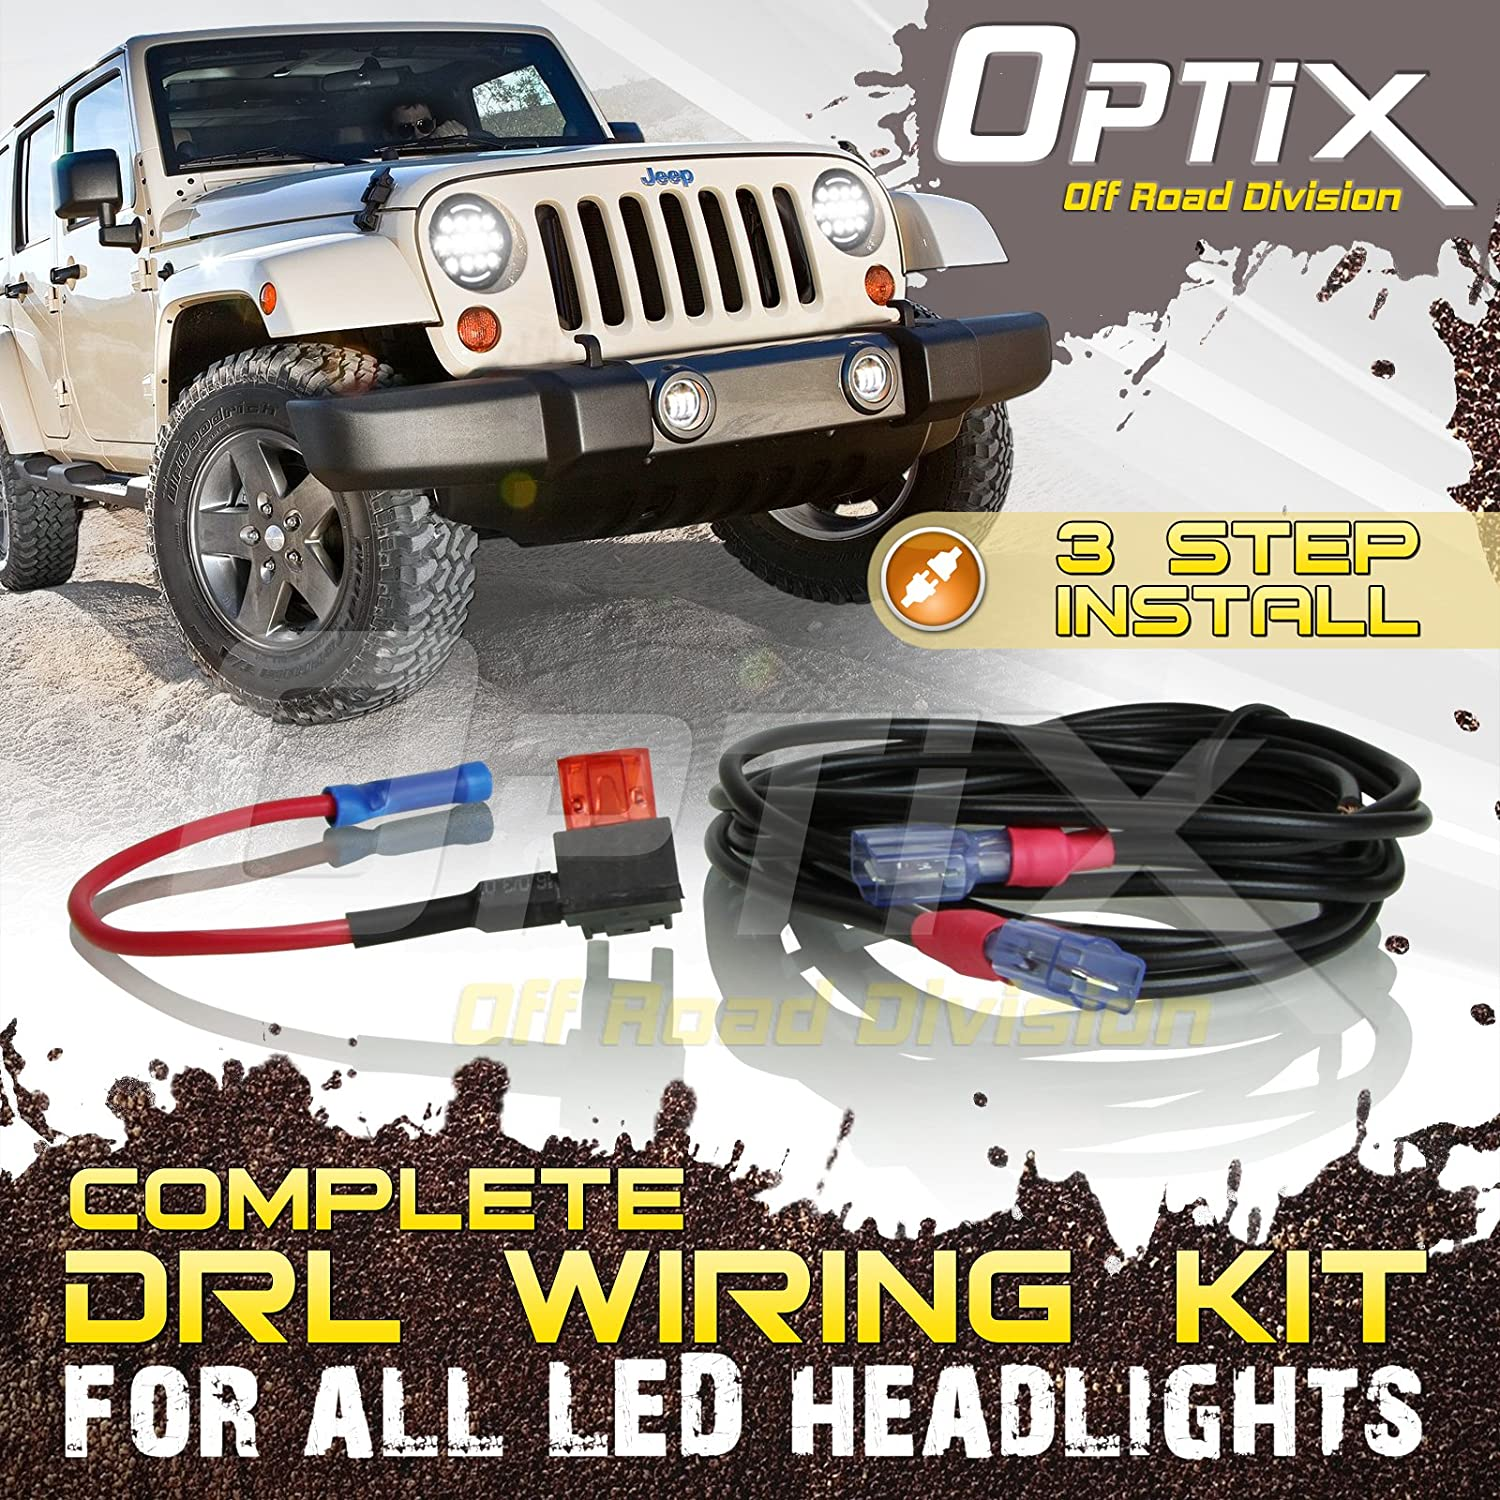 Optix Complete Drl Wiring Adapter Harness Kit For 7 Aftermarket Car Round Led Headlight With Daytime Running Lights 1997 2016 Jeep Wrangler Tj Lj Jk Made